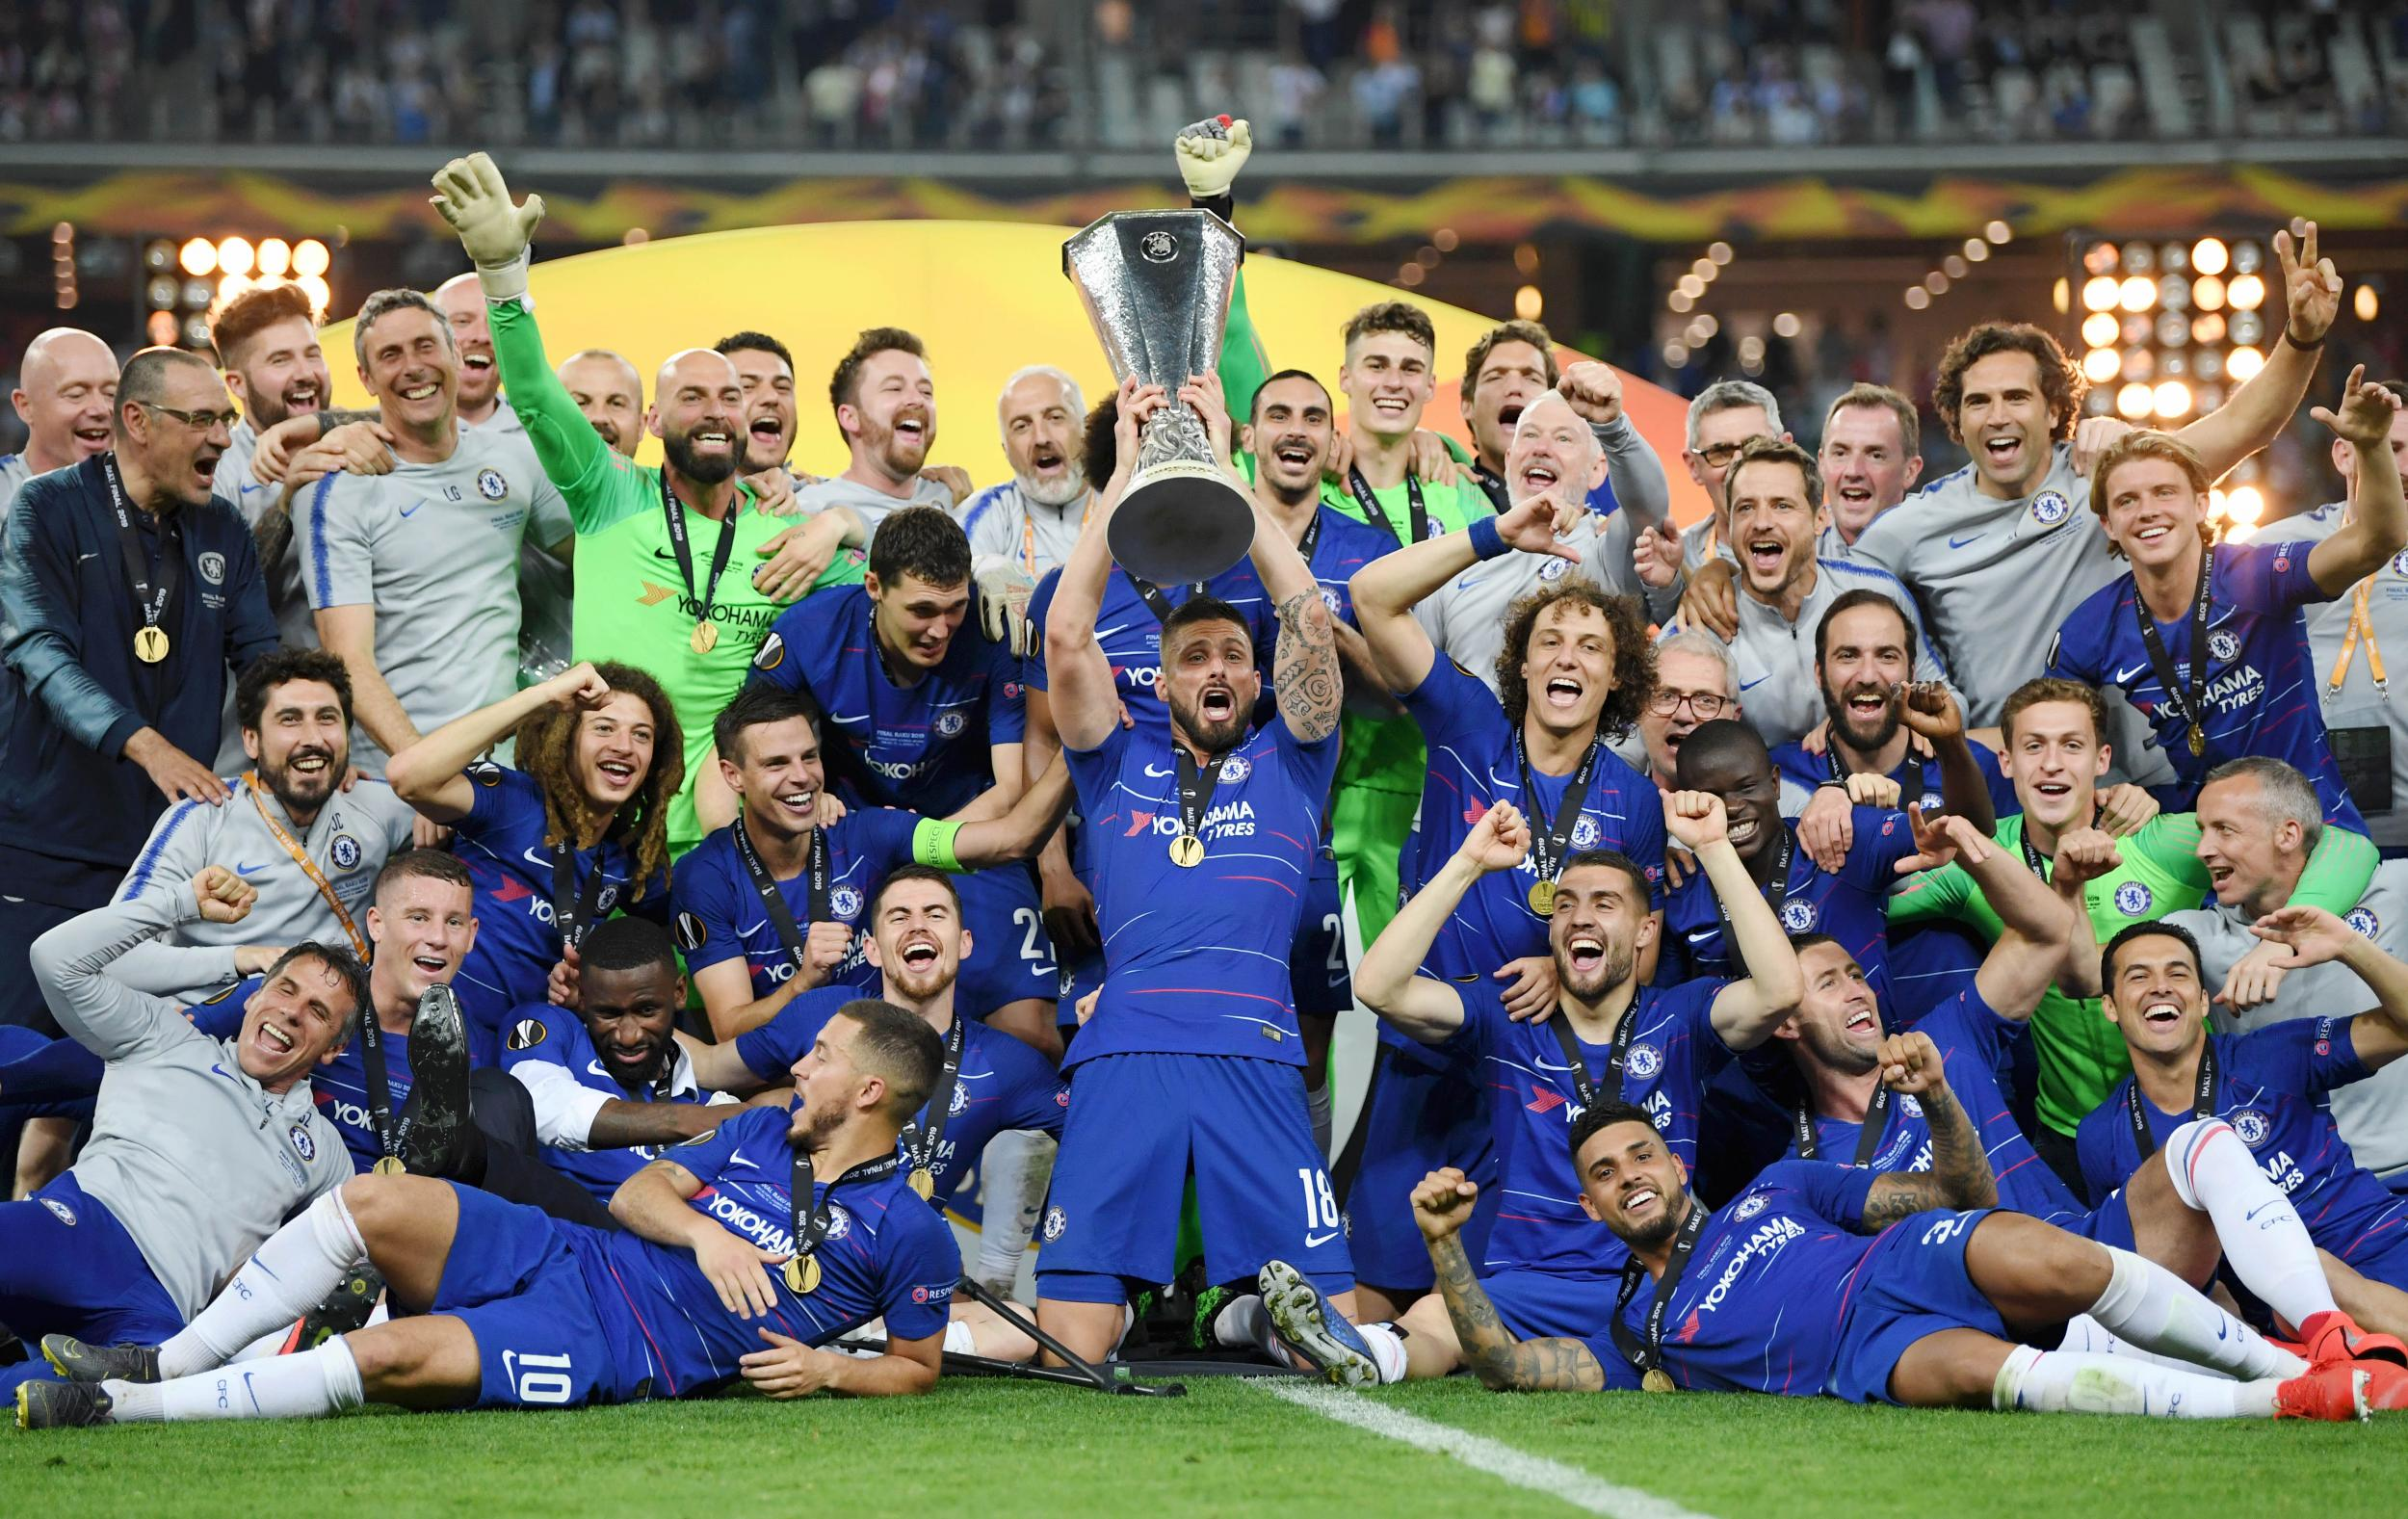 Chelsea celebrating their victory over Arsenal to claim the Europa League 2018/2019.